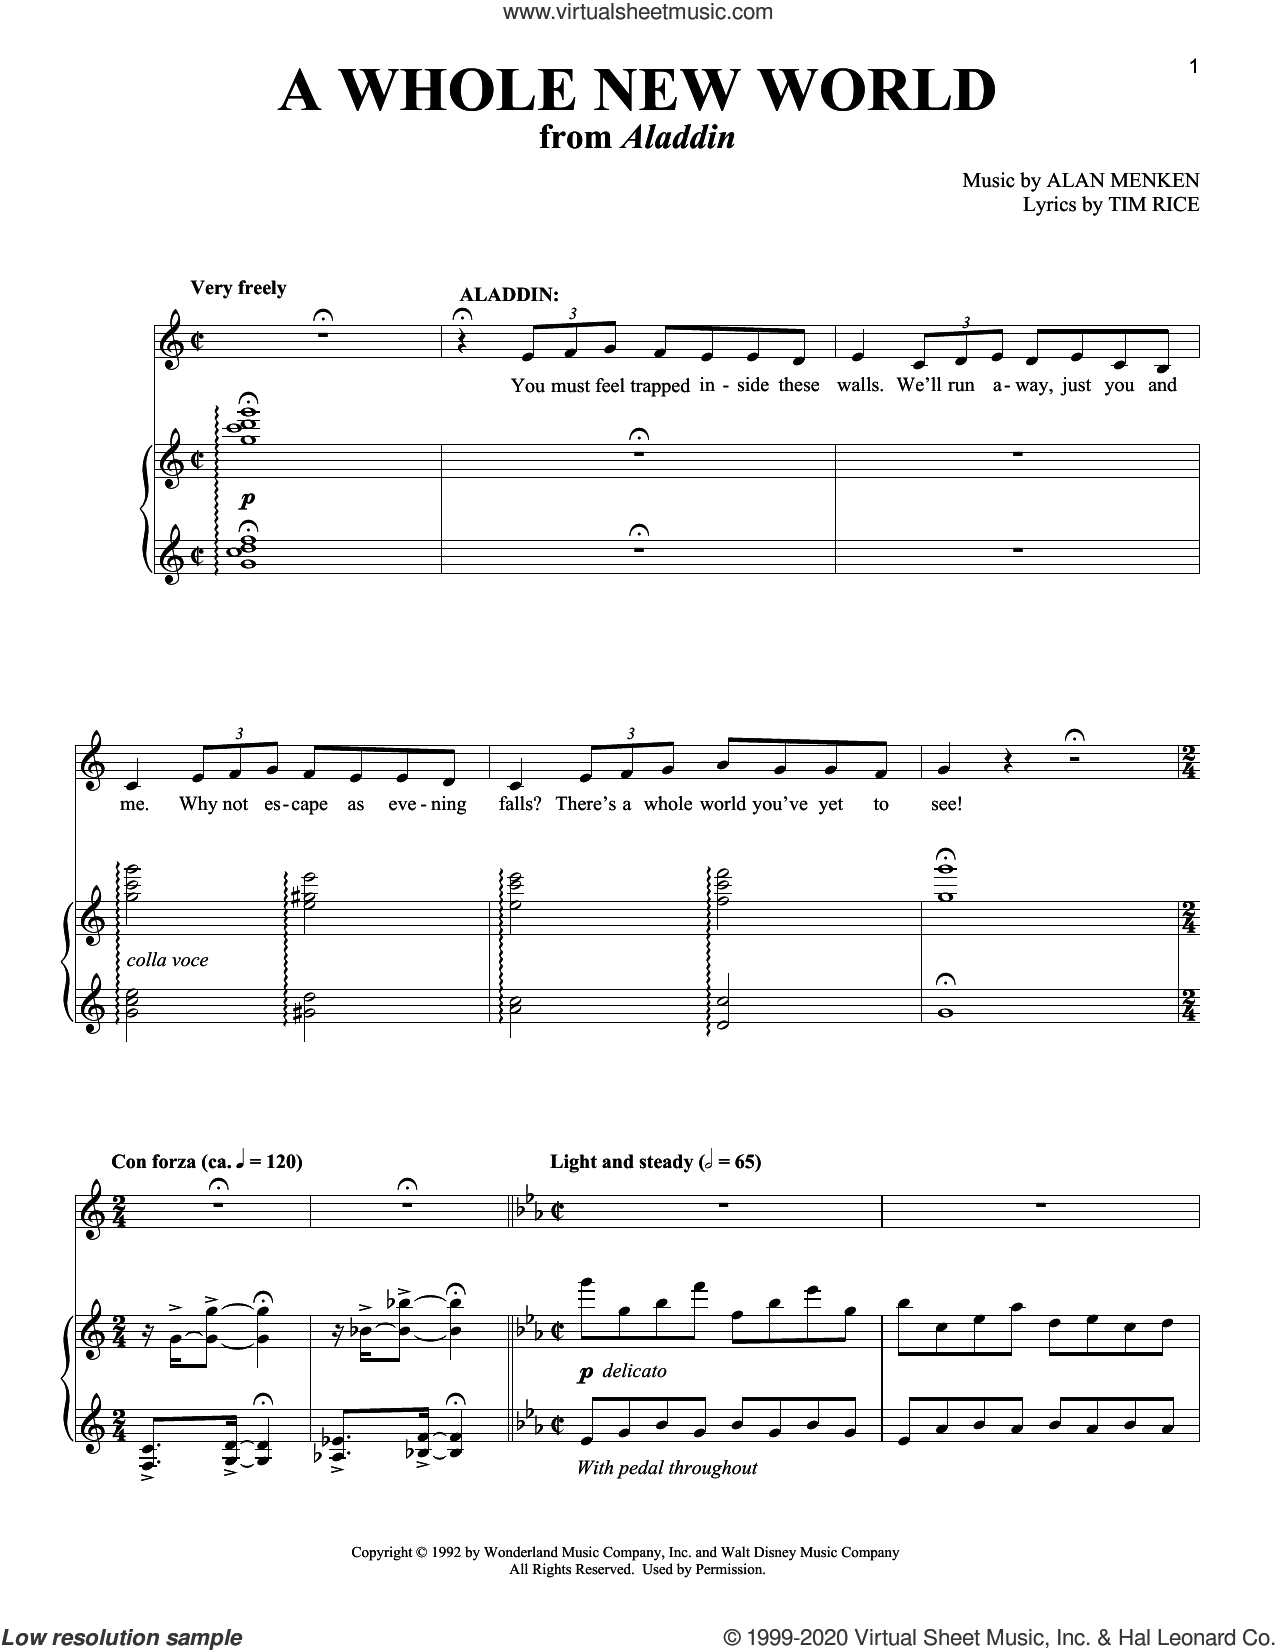 A Whole New World (from Aladdin: The Broadway Musical) sheet music for two voices and piano by Alan Menken, Richard Walters, Alan Menken & Tim Rice and Tim Rice, intermediate skill level